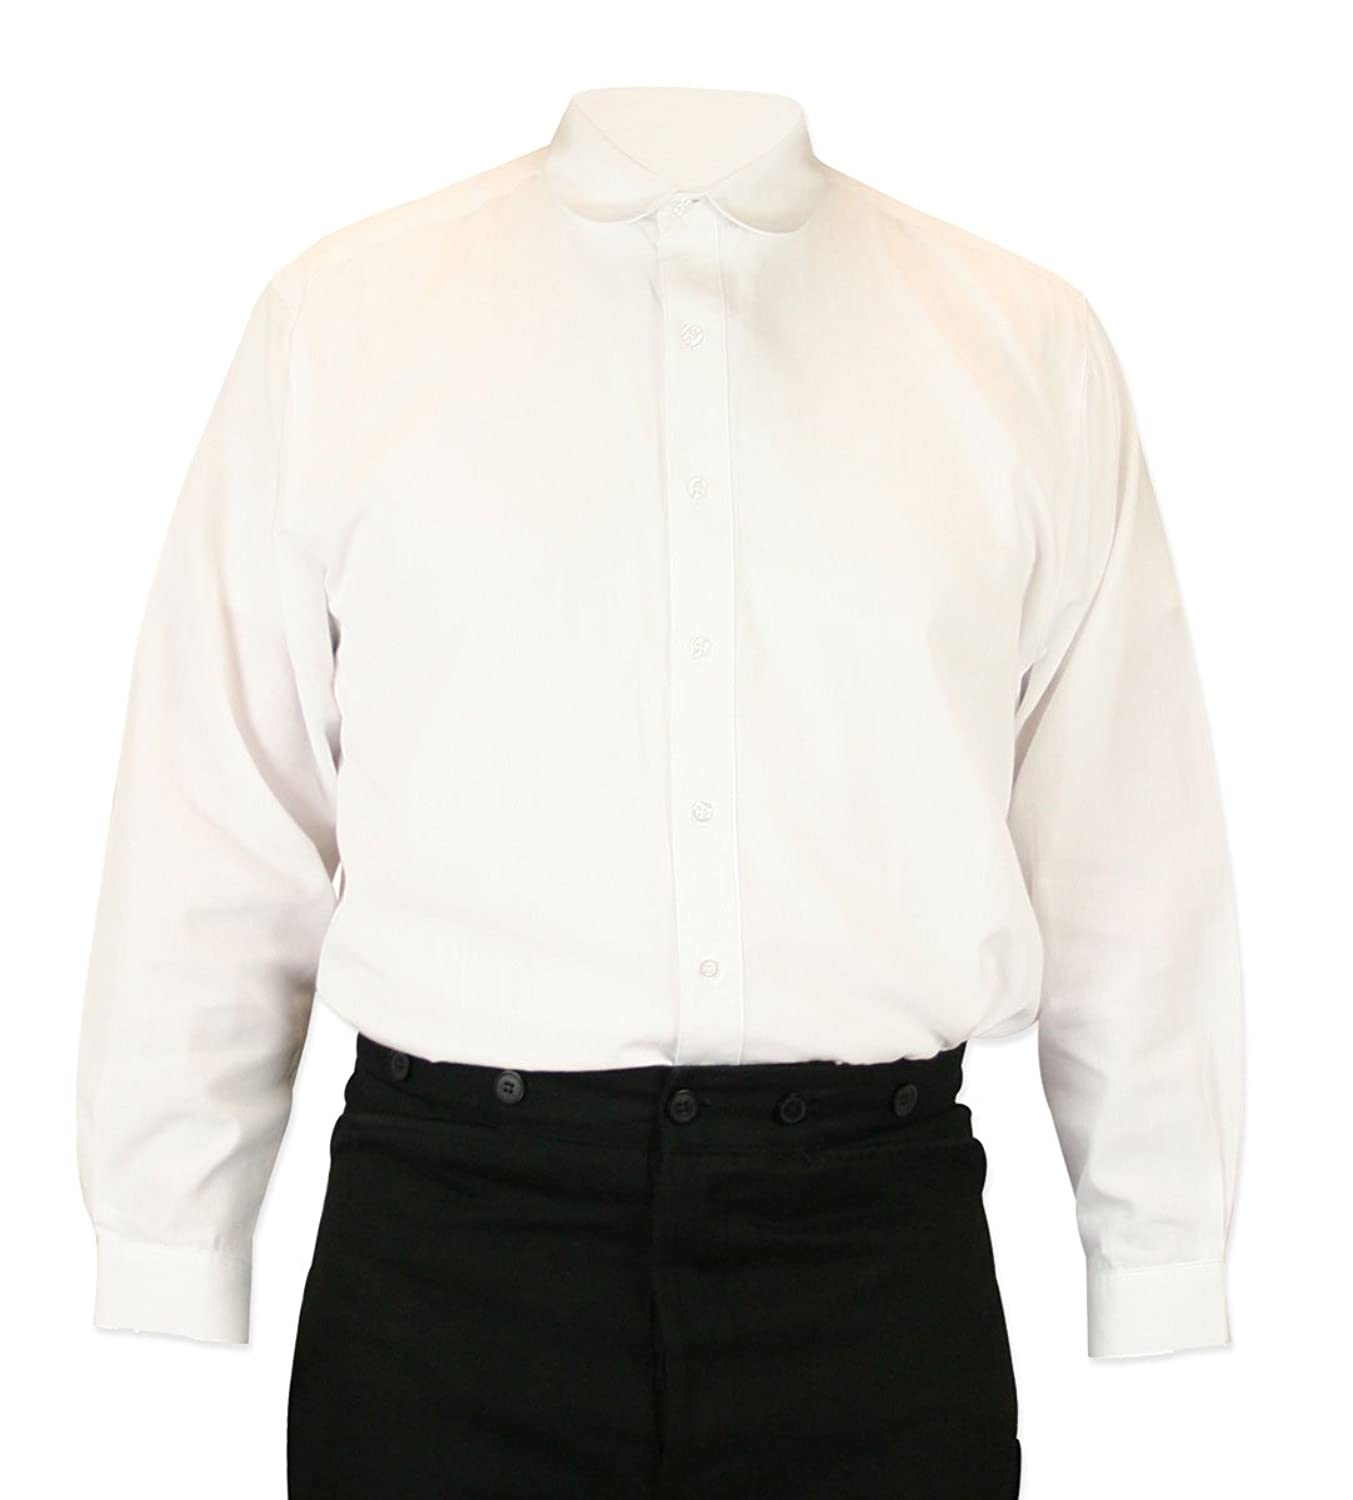 Dress in Great Gatsby Clothes for Men Virgil Club Collar Dress Shirt $59.95 AT vintagedancer.com